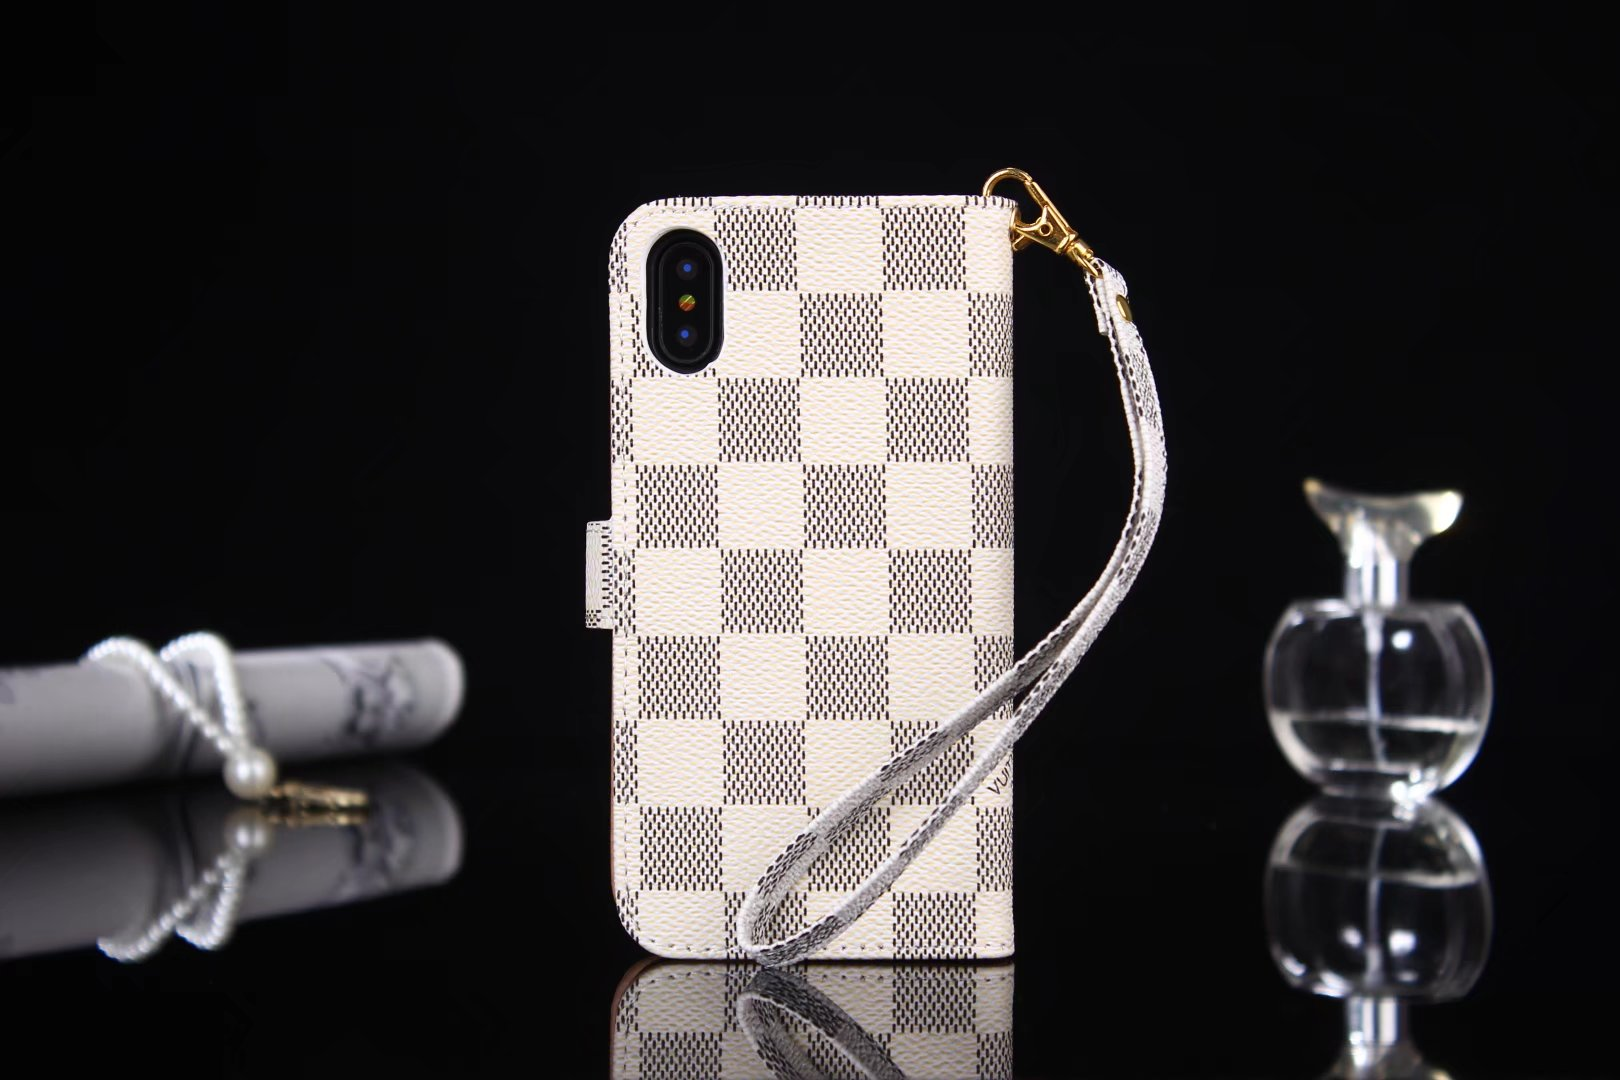 fashion iphone X cases personalized iphone X case Louis Vuitton iPhone X case apple store iphone 8 cases mobile cases and covers phonecases cellular covers cover plus mophie iphone 8 juice pack plus